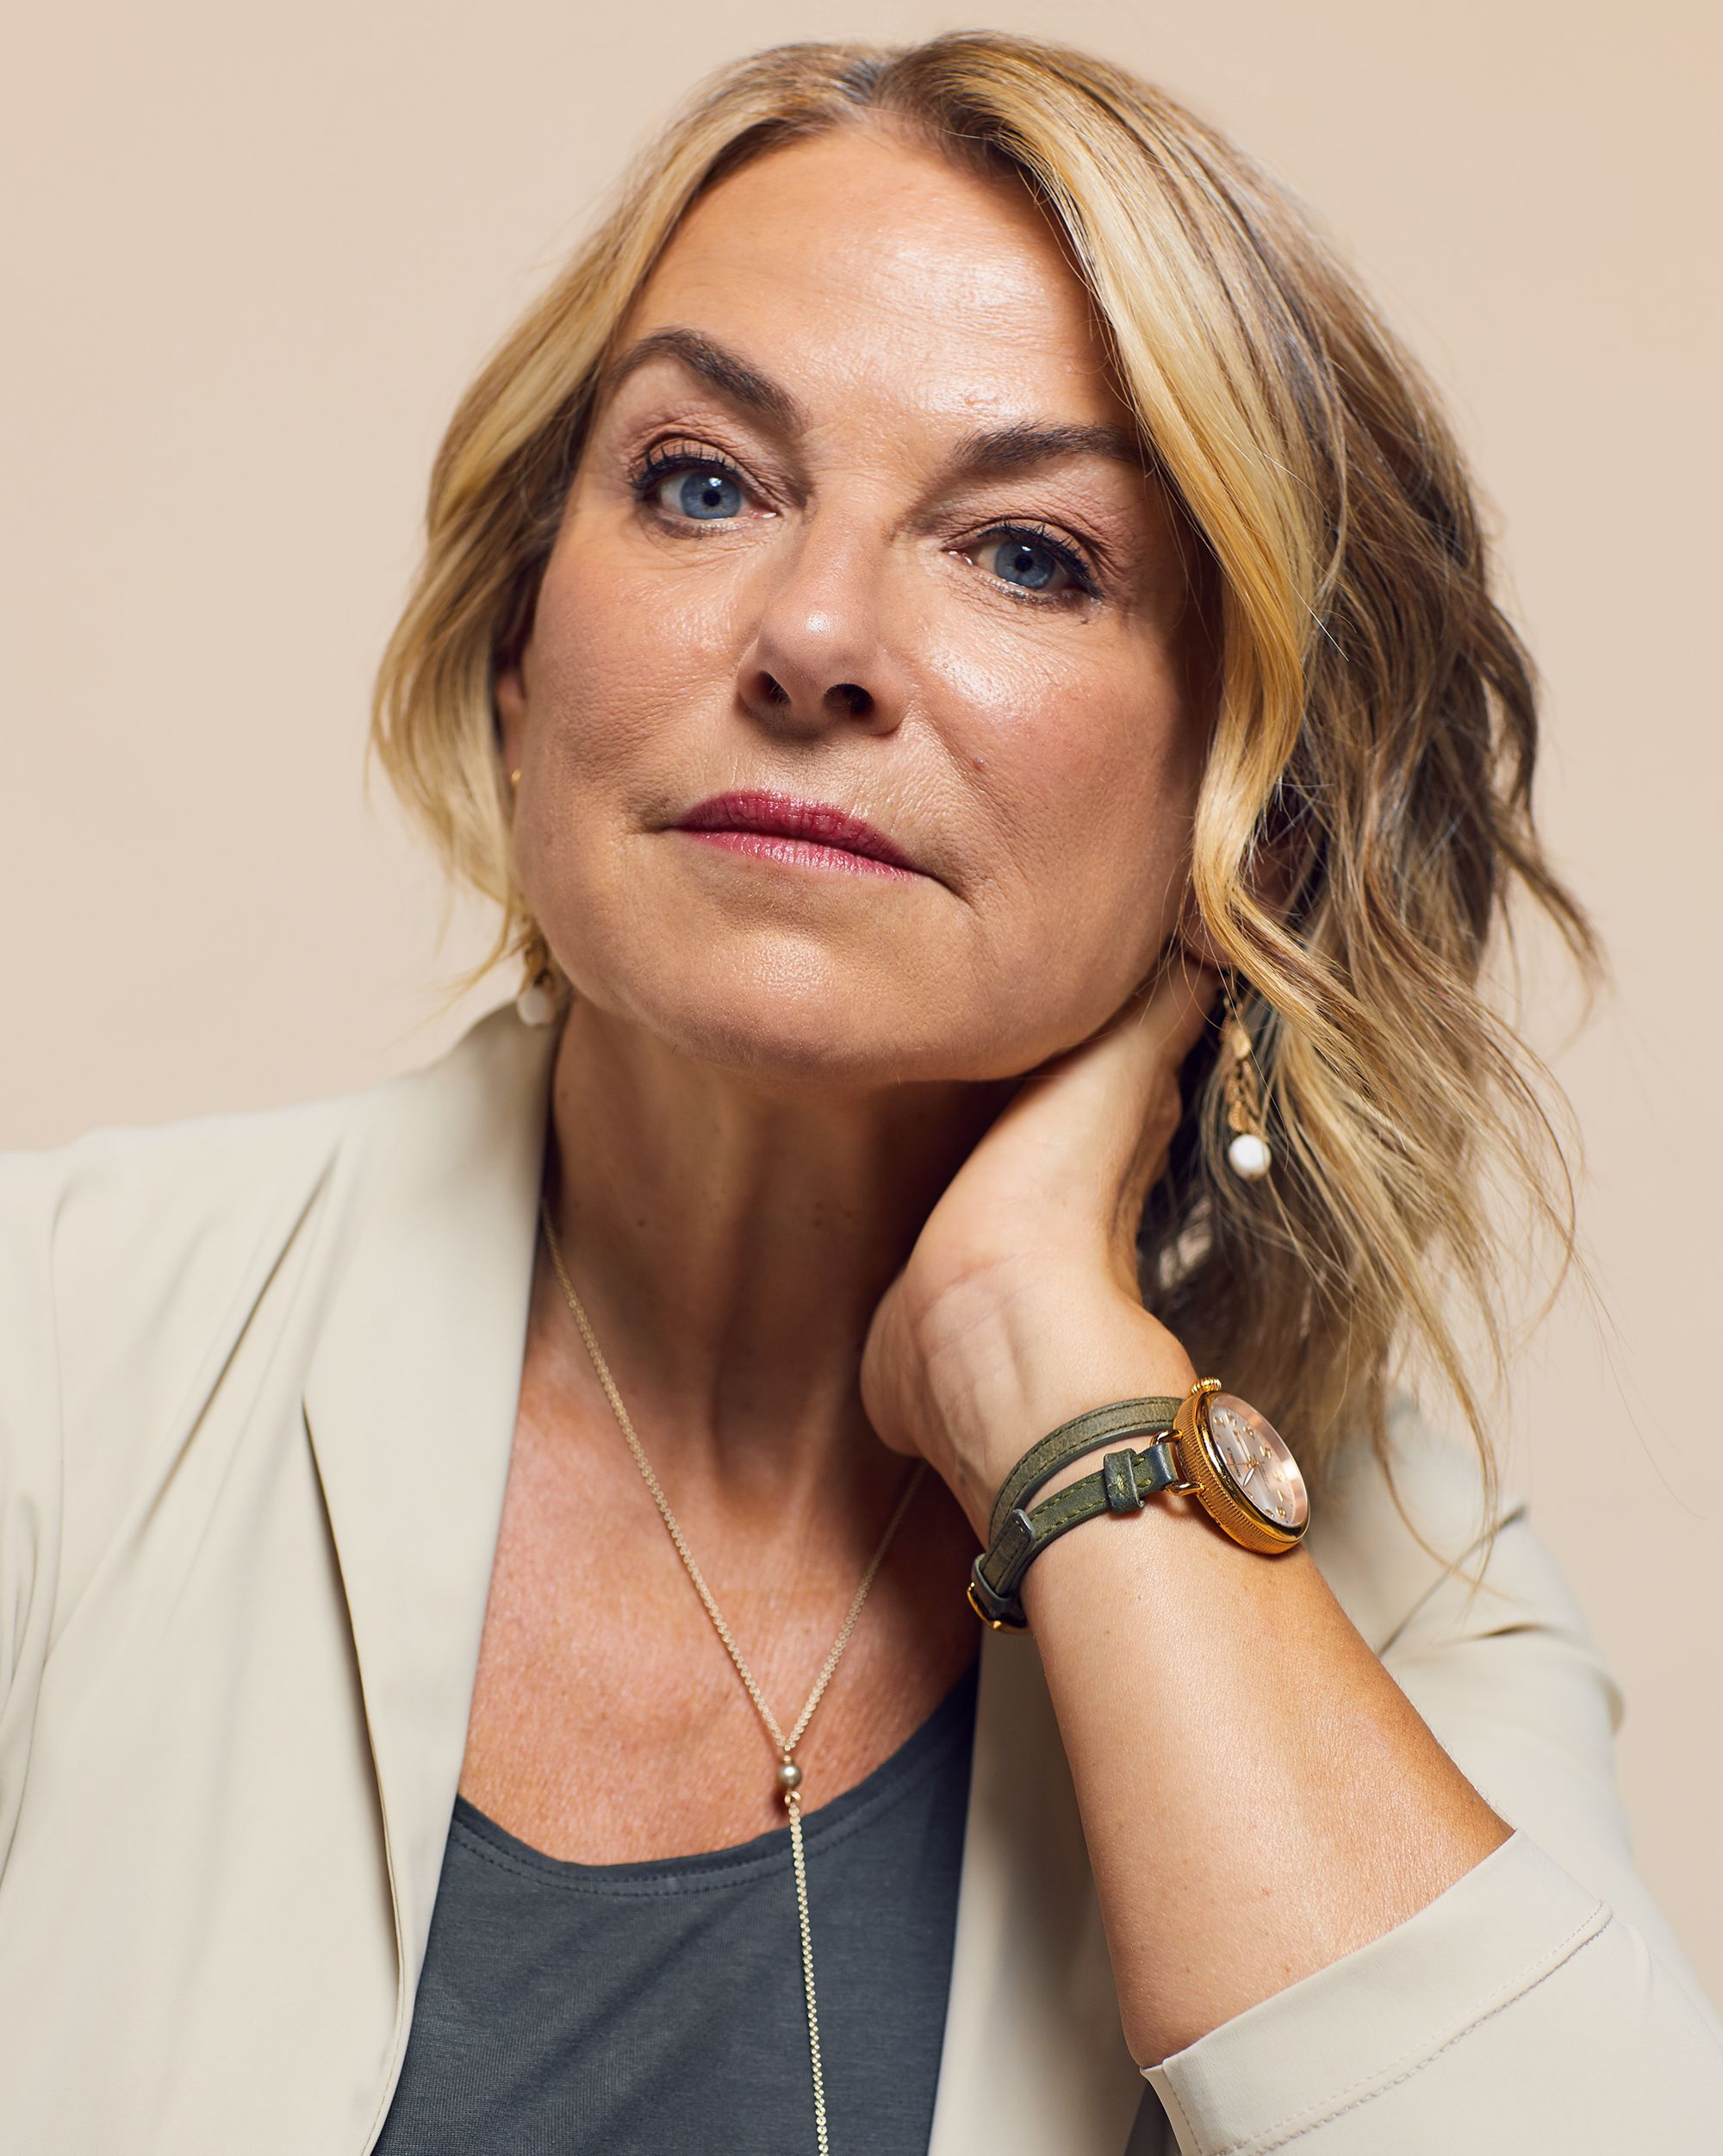 For Esther Perel, Romance and Power Are Intertwined